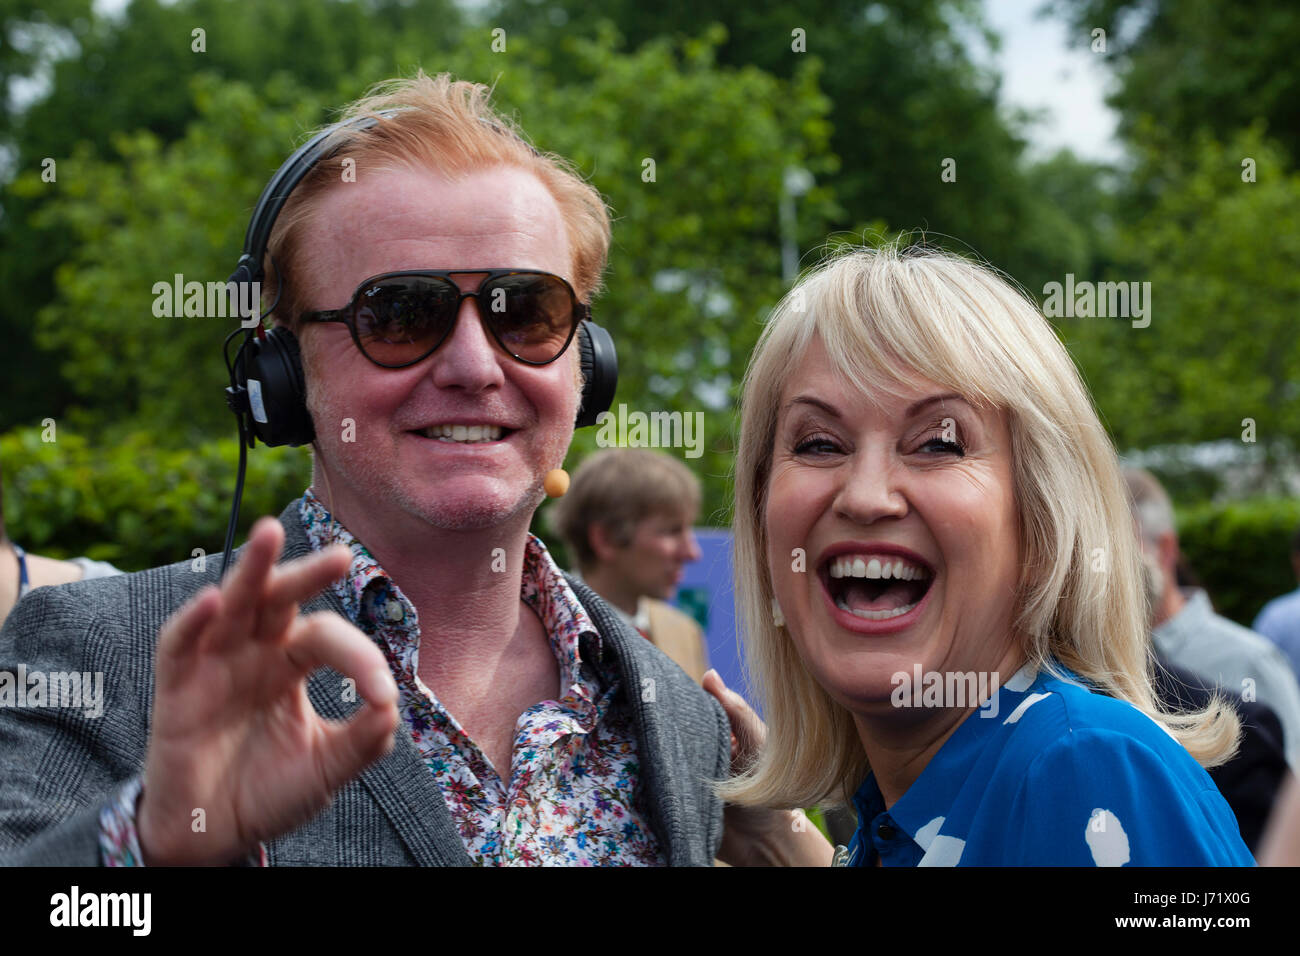 Chelsea Flower Show, London, England, 22nd May 2017. Chris Evans with Nicky Chapman broadcasting his breakfast show Stock Photo